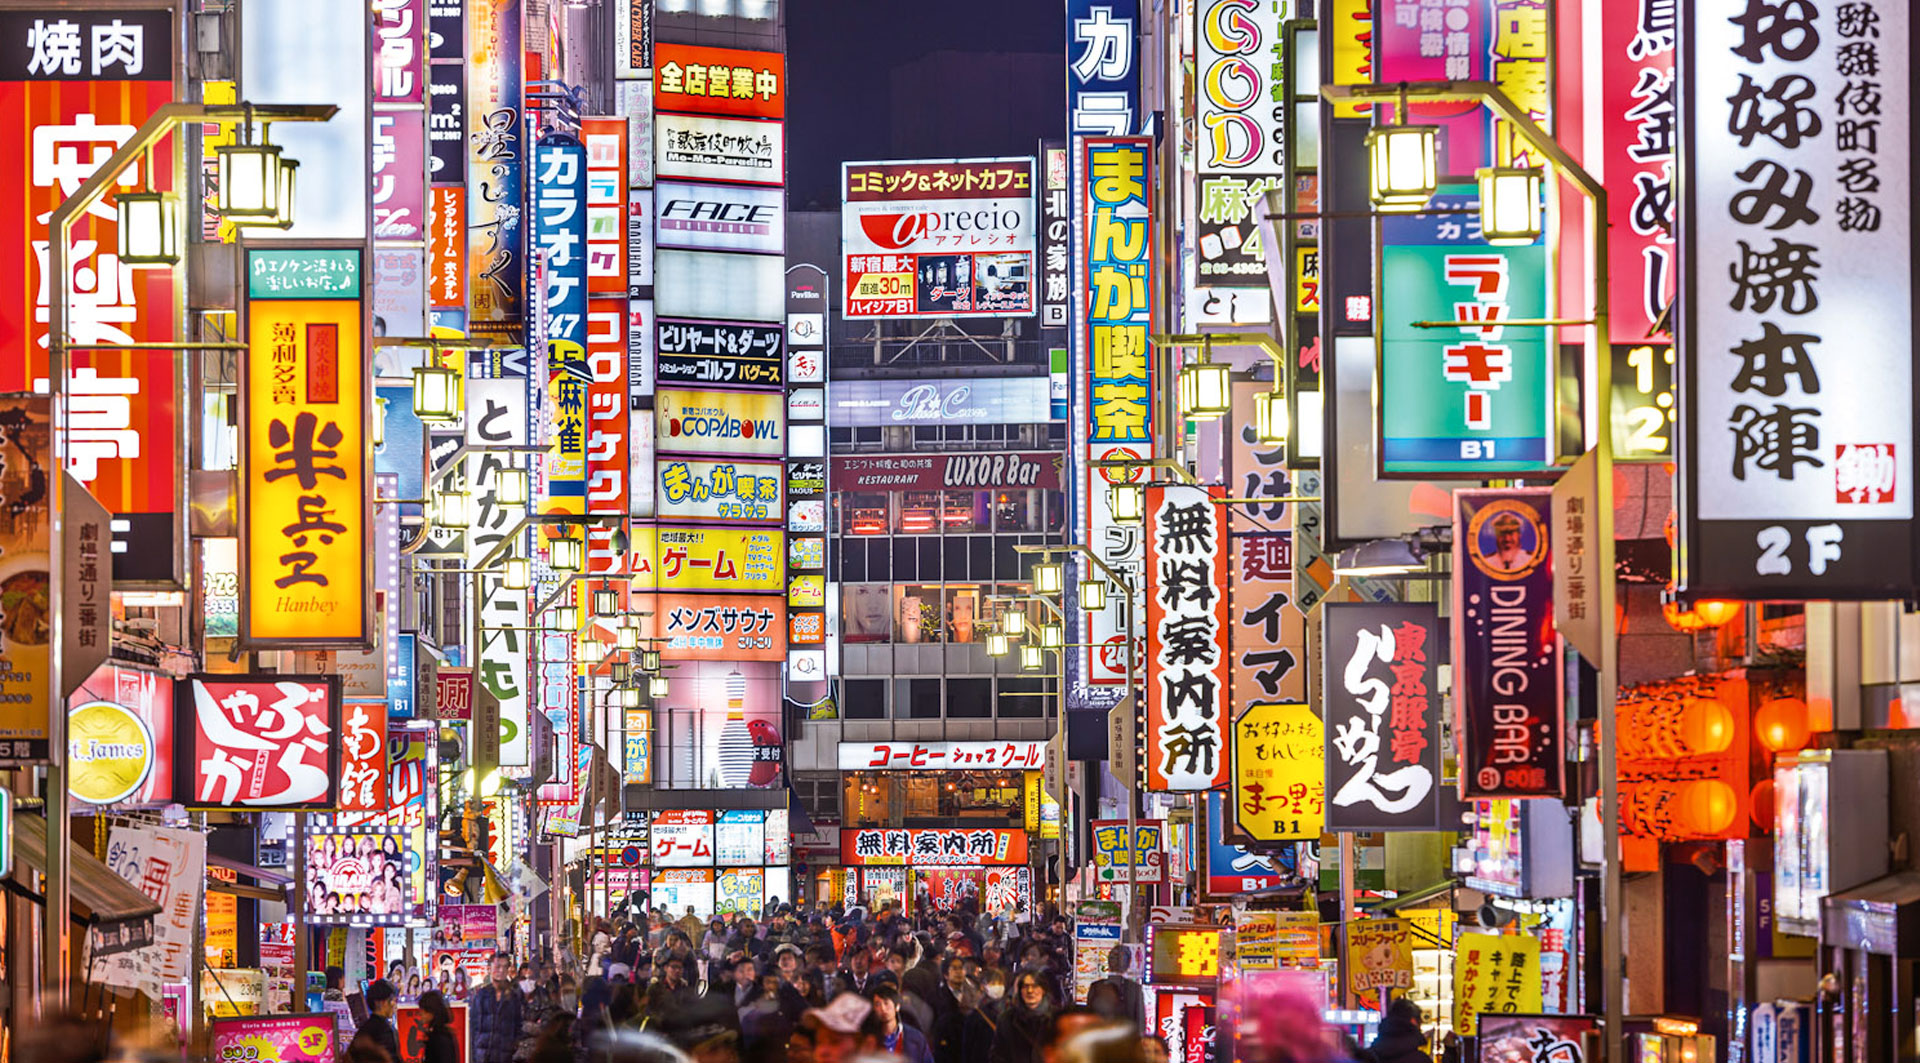 tokyo 2020 summer games travel package add ons